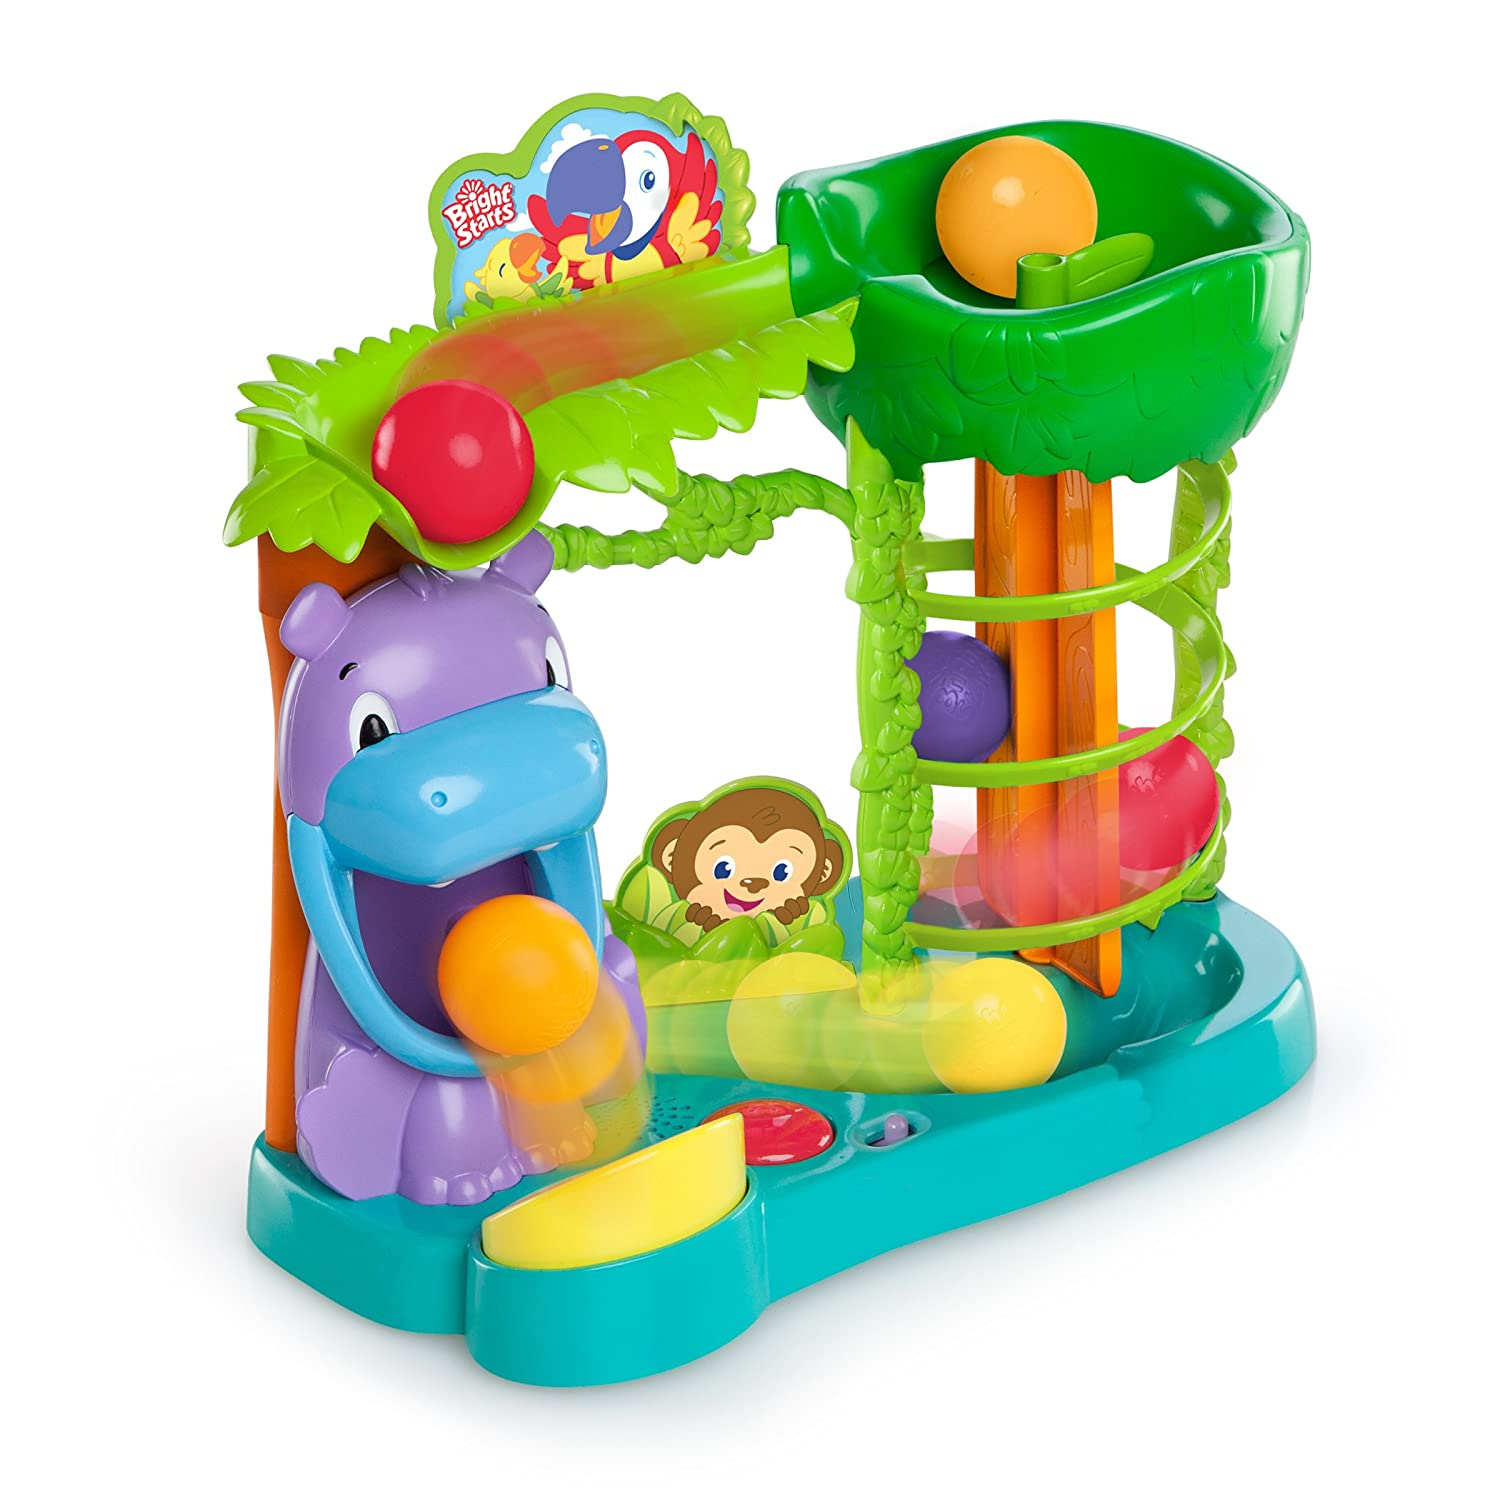 Amazon Bright Starts Baby Toy Jungle Fun Ball Climber Baby